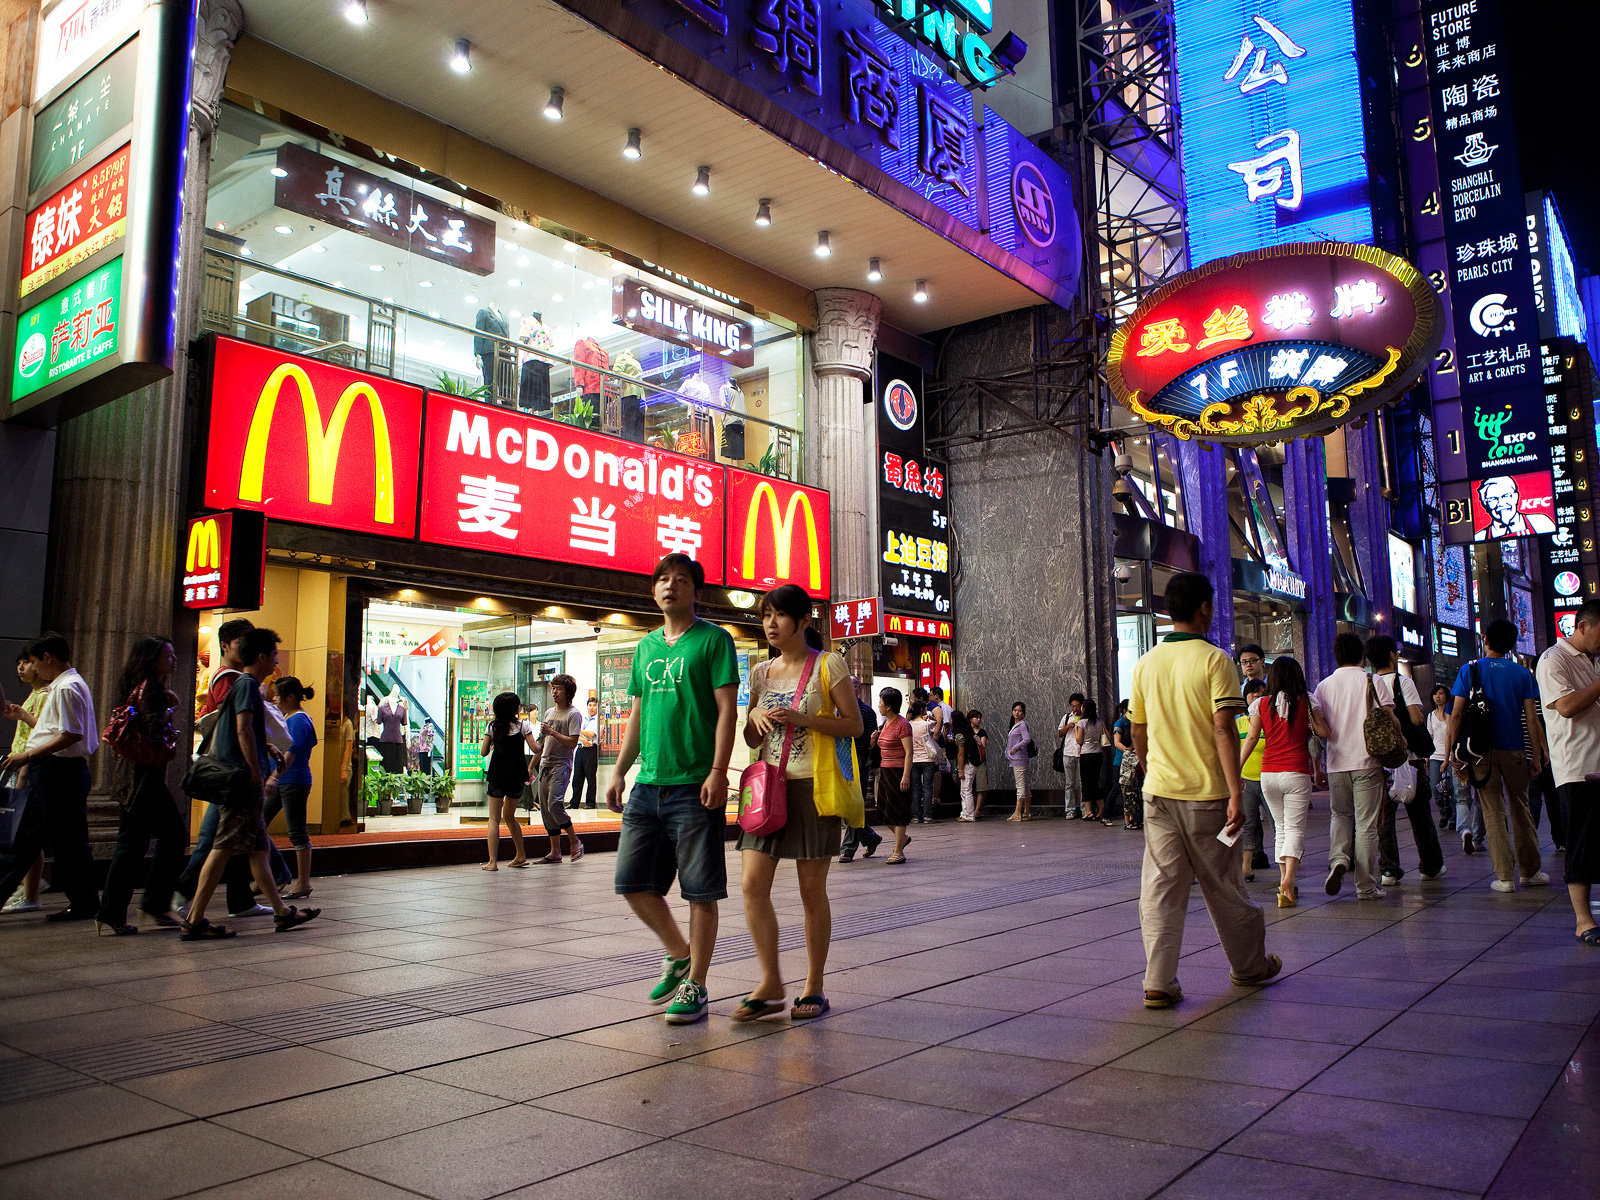 McDonald's Name Change in China